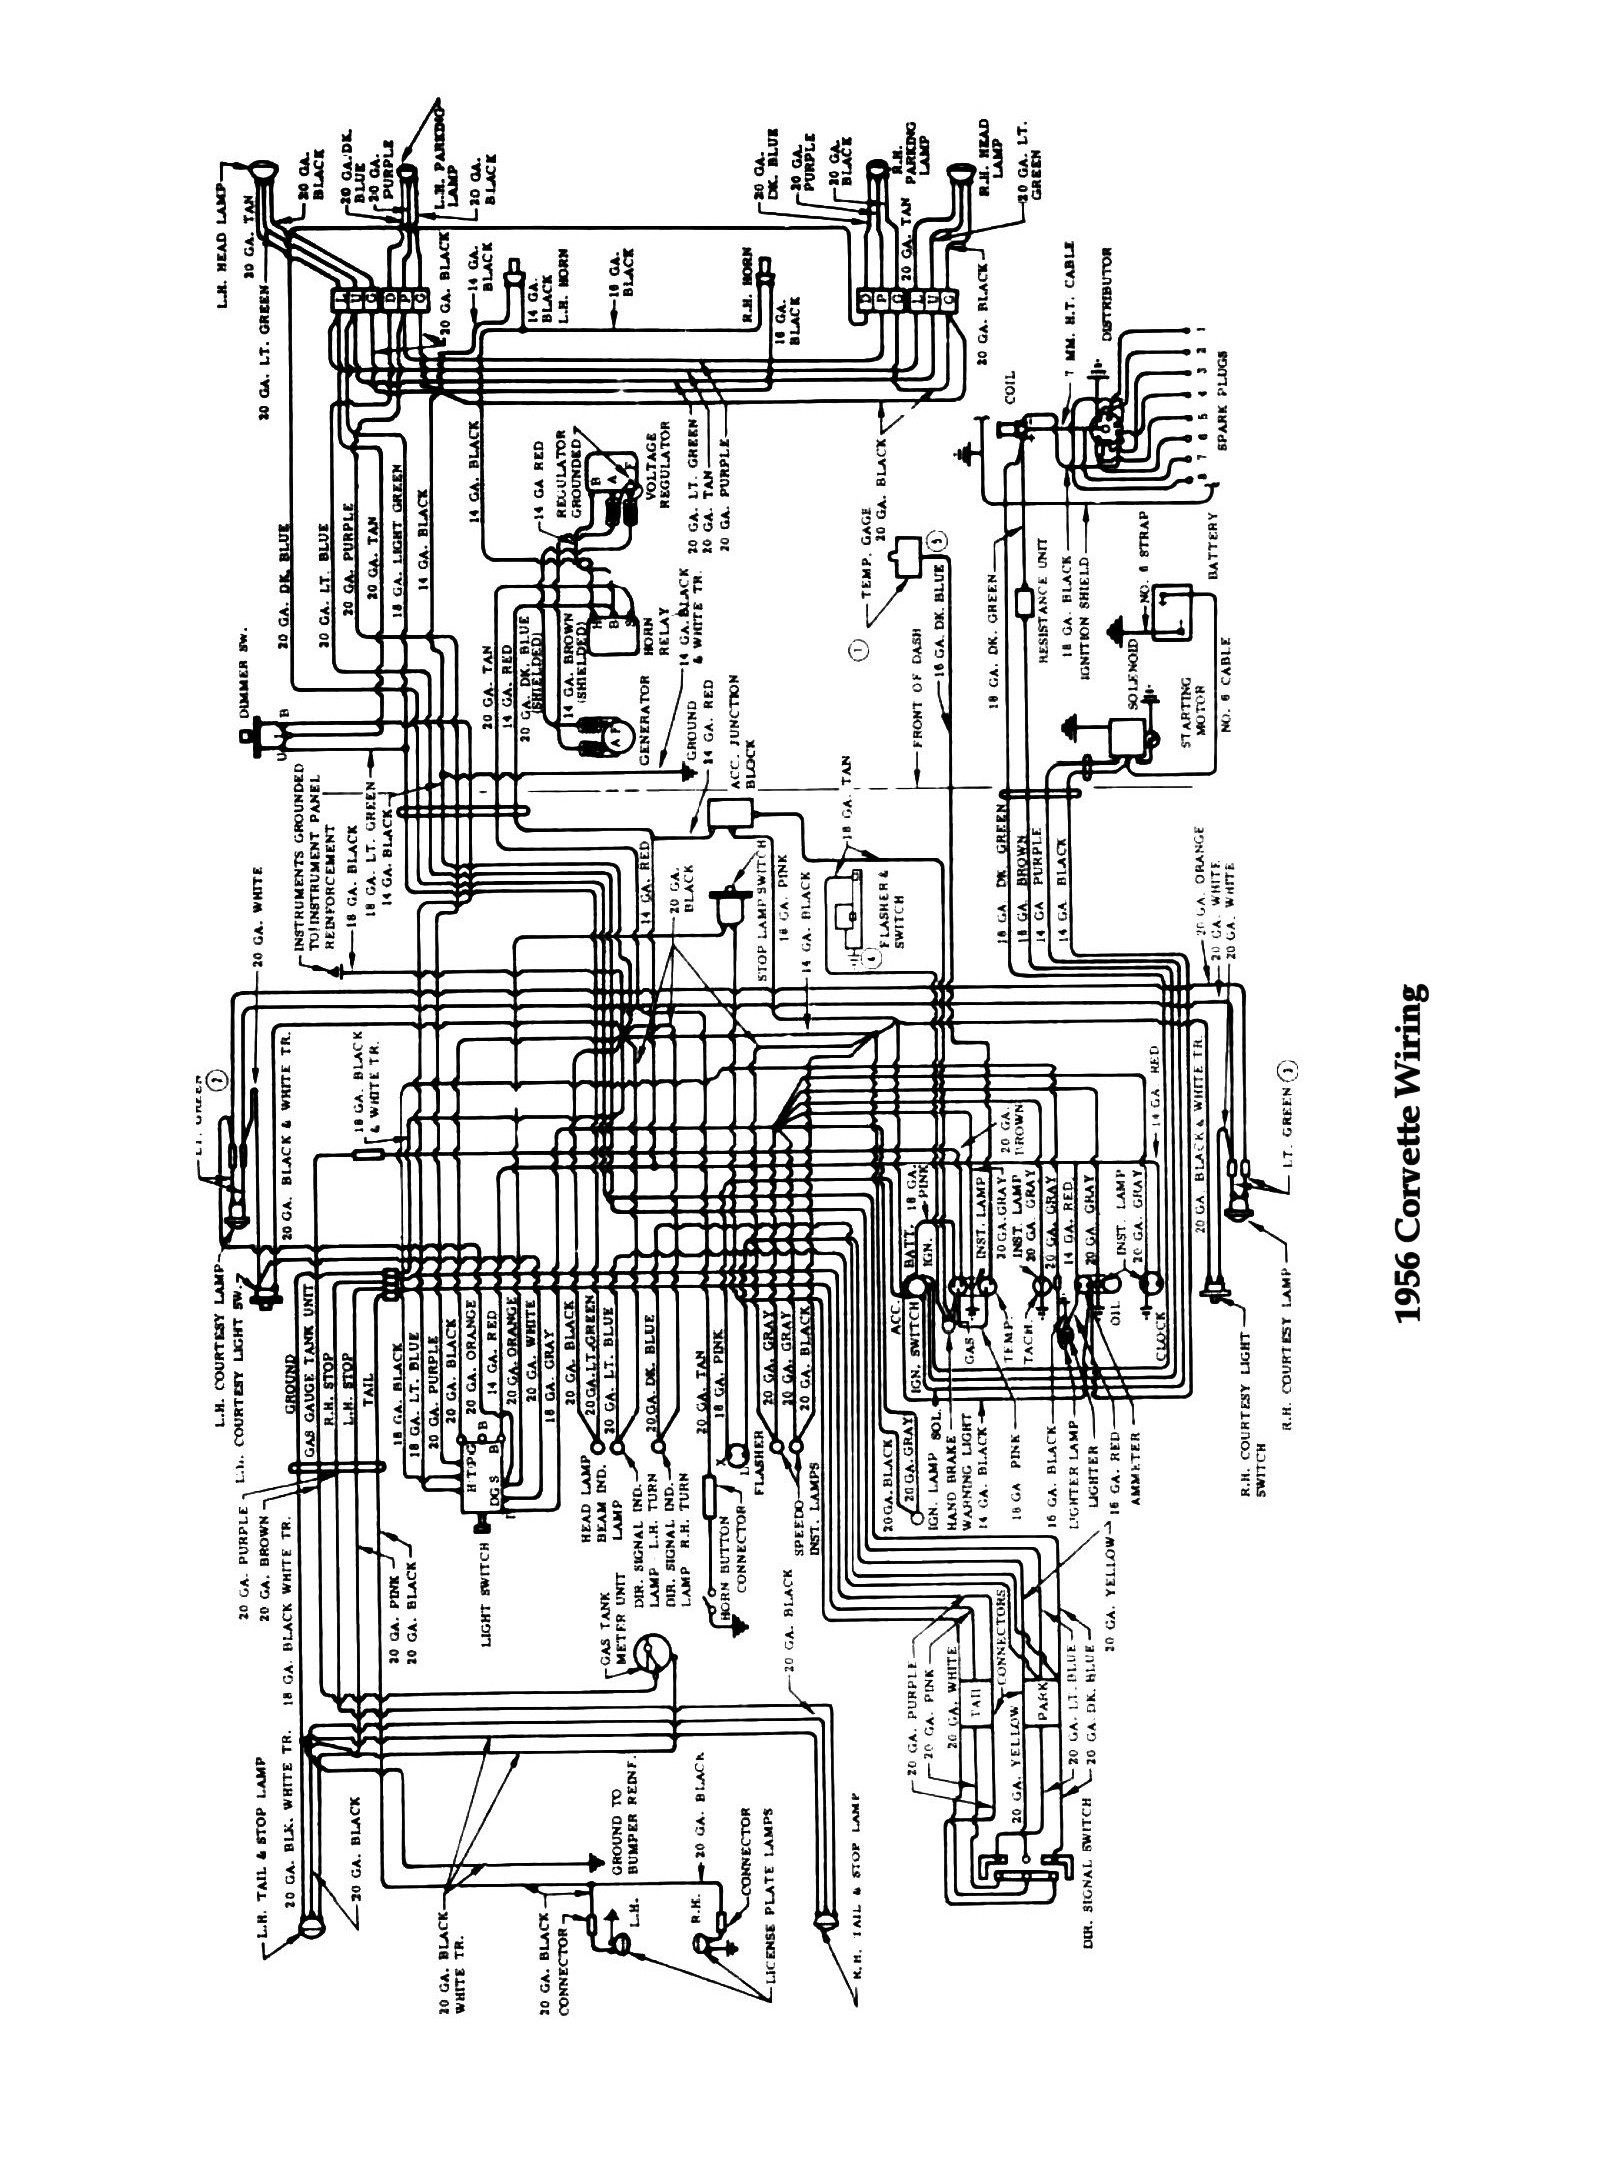 chevy wiring diagrams rh chevy oldcarmanualproject com 1956 Chevy Bel Air Fuse Block Diagram 1957 Chevy Fuse Block Diagram